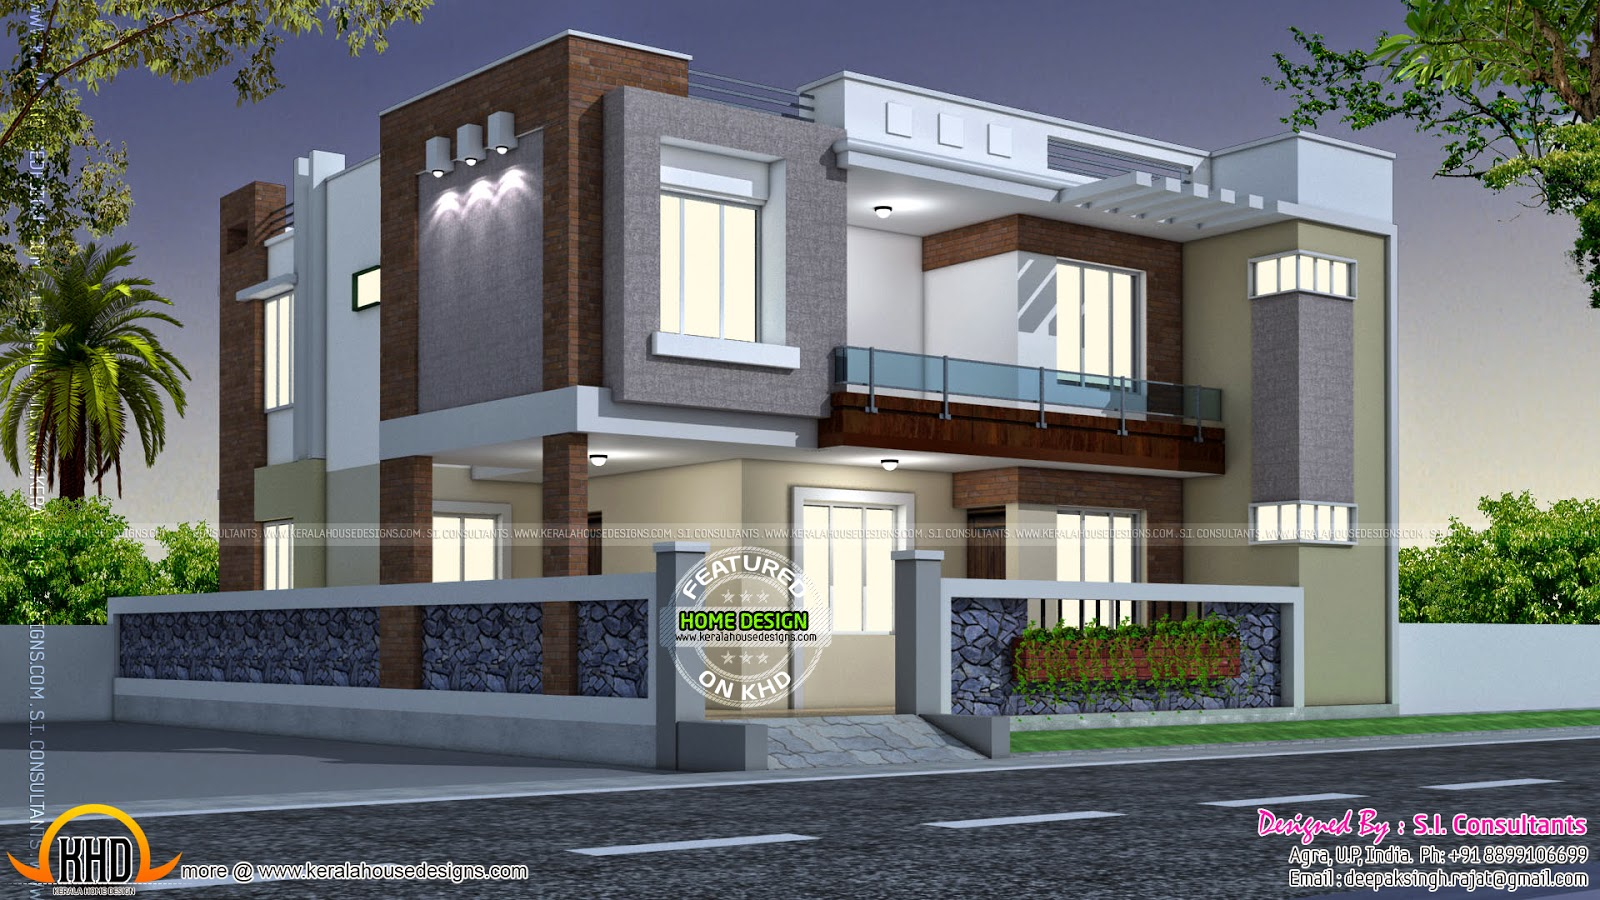 A Sleek Modern Home With Indian Sensibilities And An Interior ...